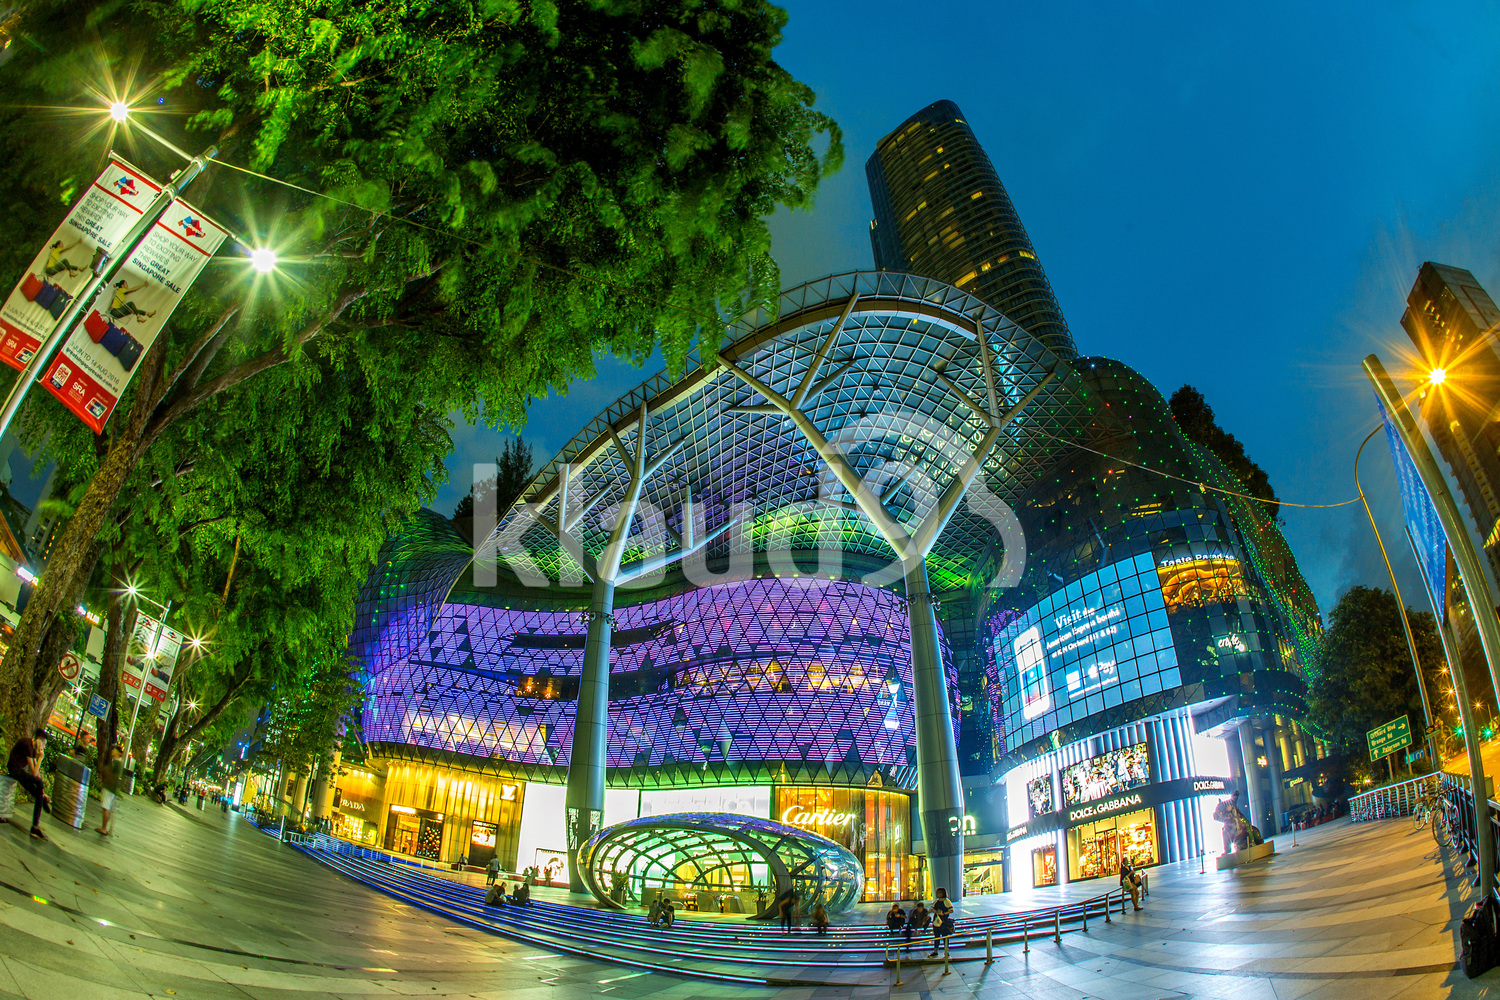 Ion in Orchard Road, Singapore